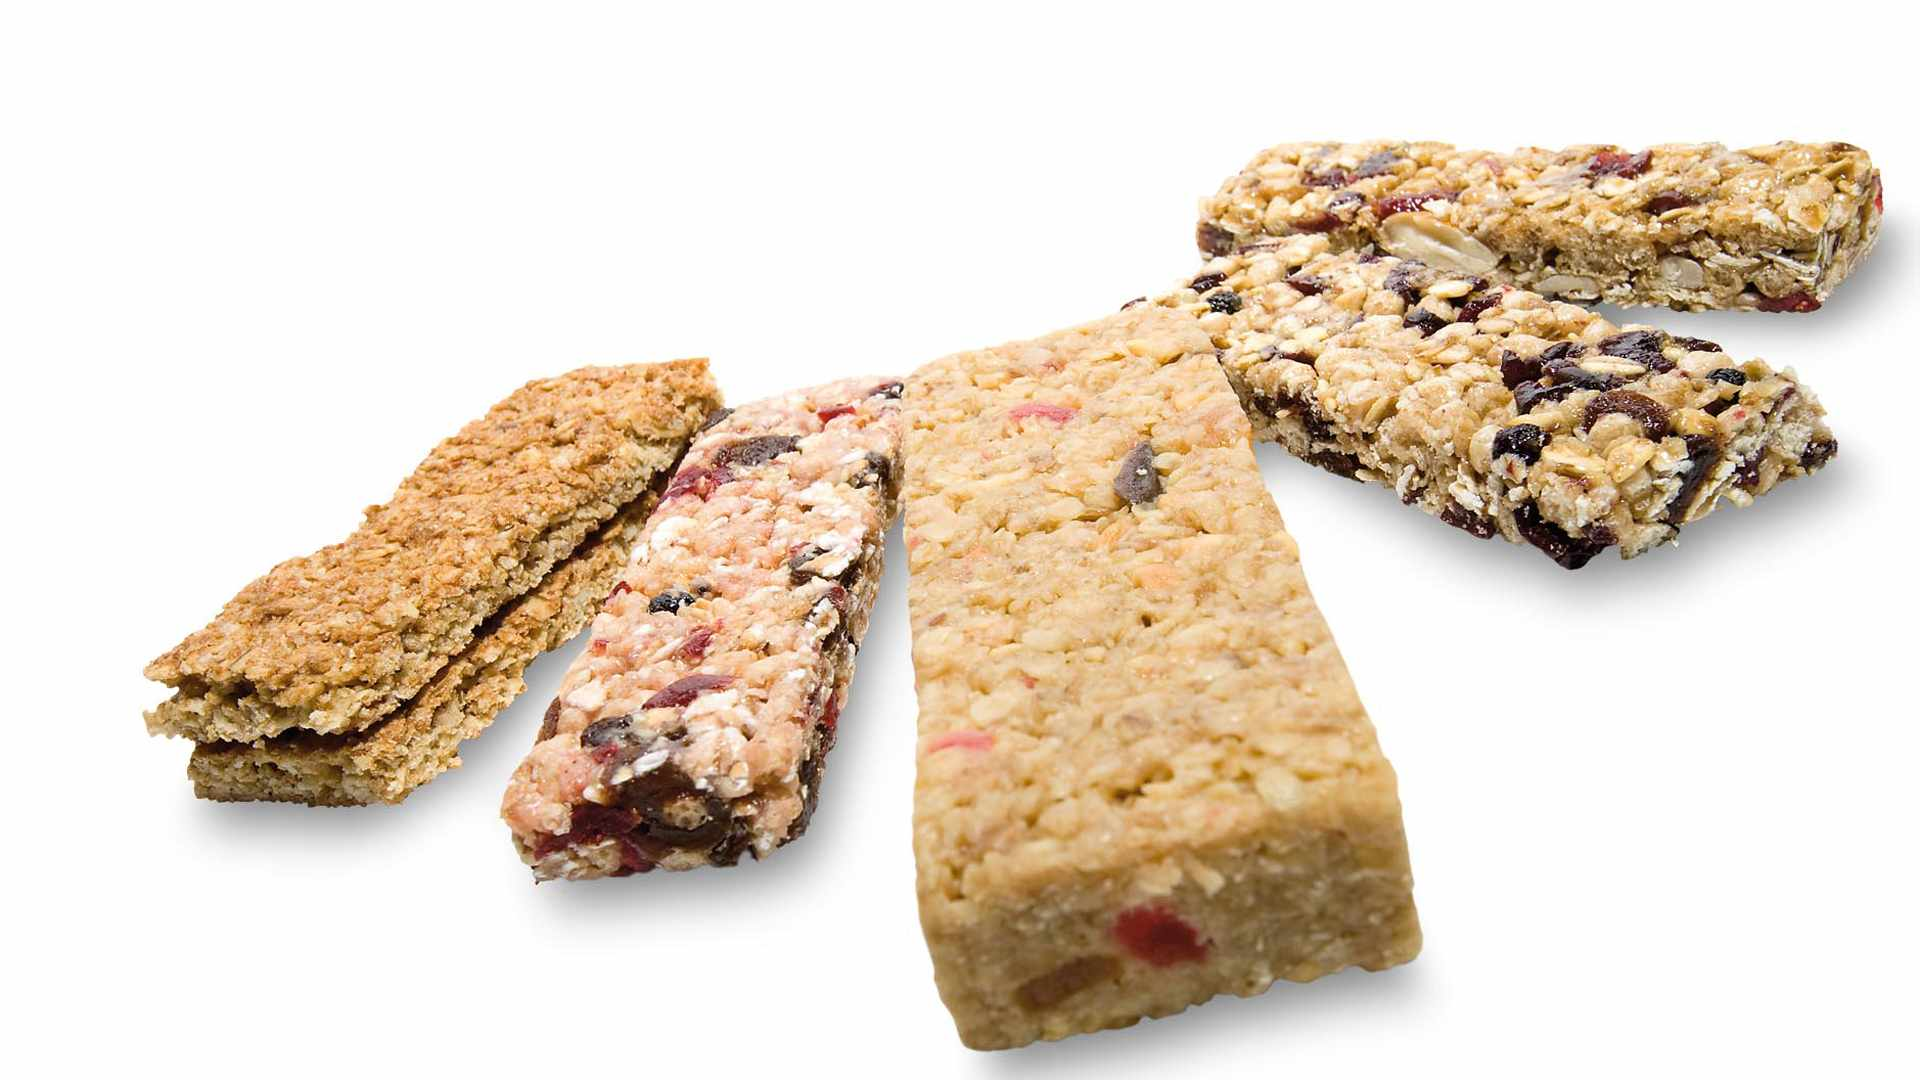 A 'healthy' snack bar isn't always as good for you as it makes out — but all you need to know is on the label, if you know what to look for